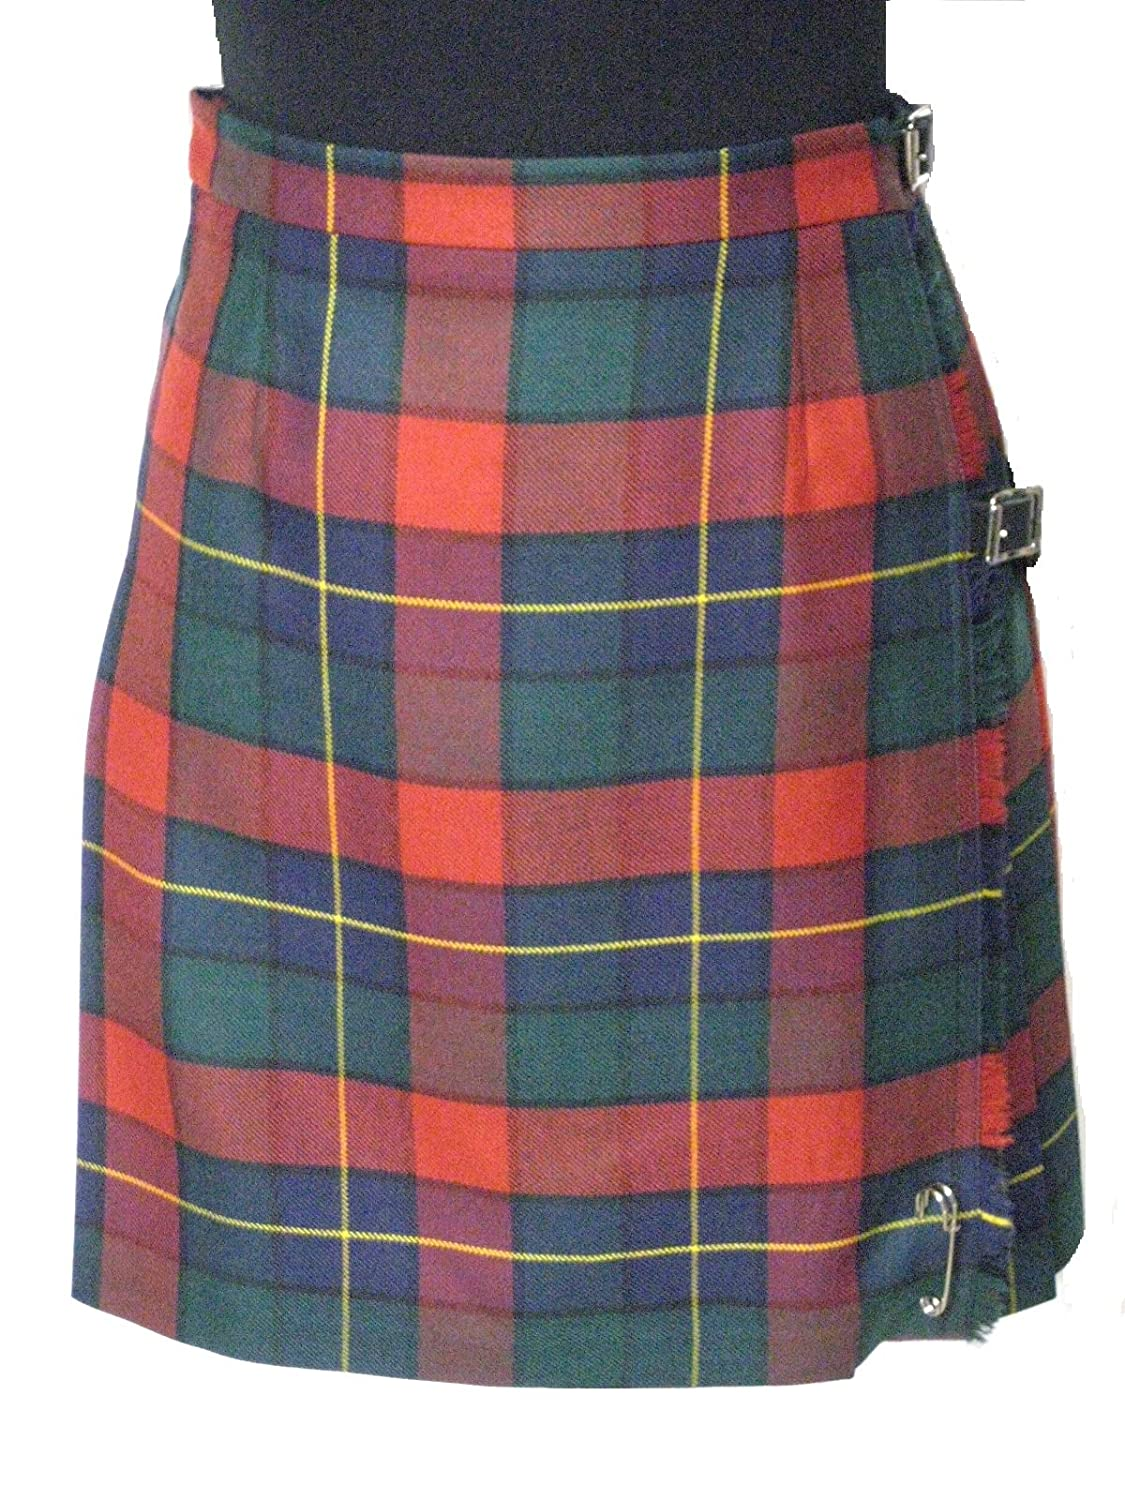 Ladies 100% Wool Kilgour Tartan Knee Length Kilt - Made in Scotland by Lochcarron